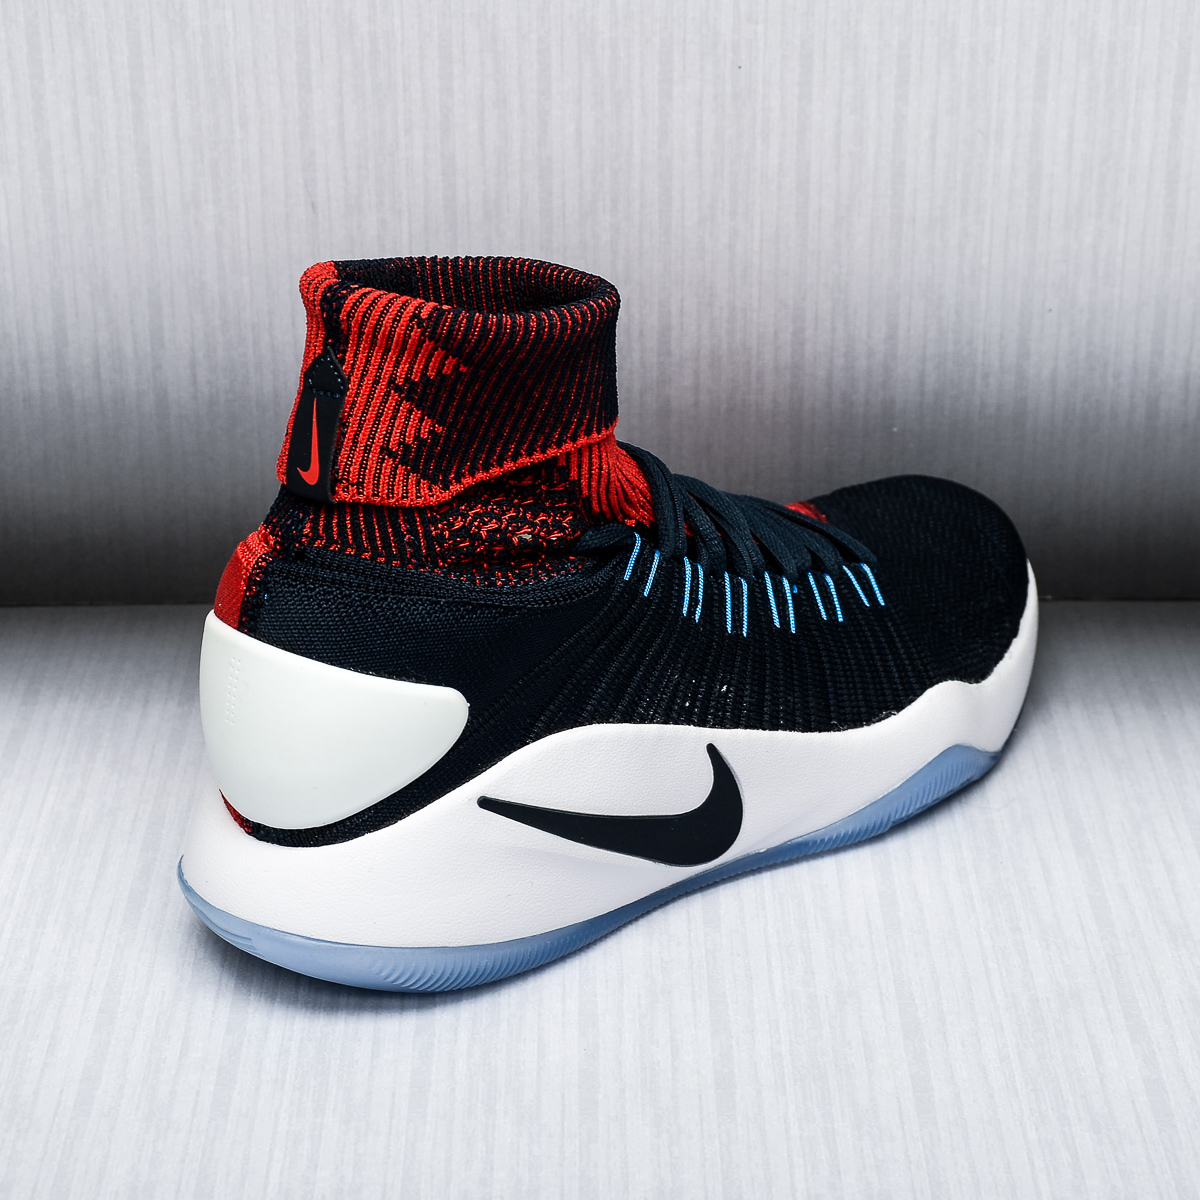 Nike Hyperdunk 2016 Flyknit USA Basketball Shoes ...